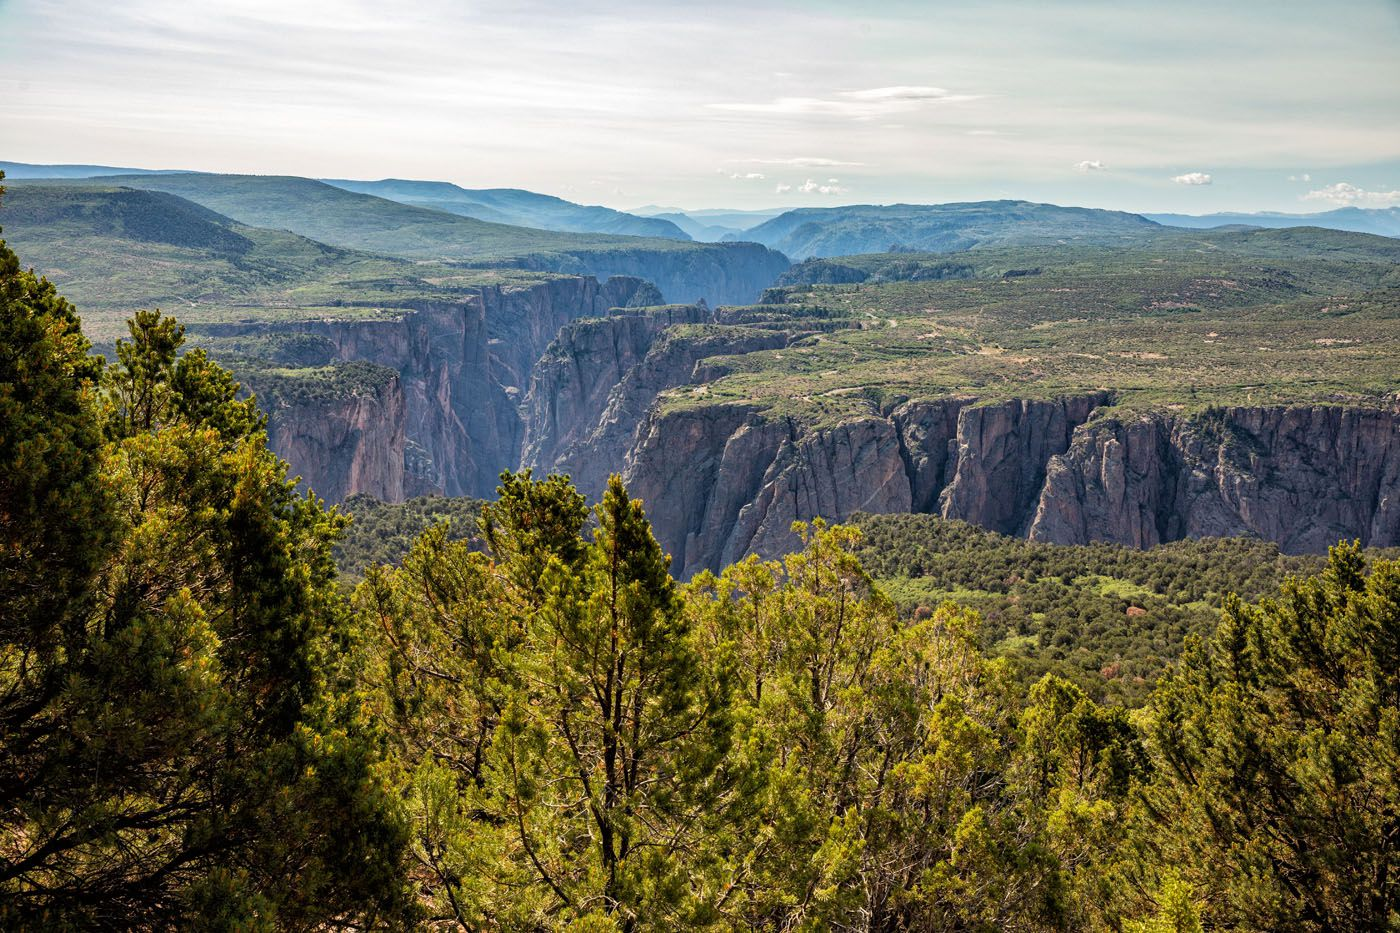 Green Mountain View how to visit the Black Canyon of the Gunnison